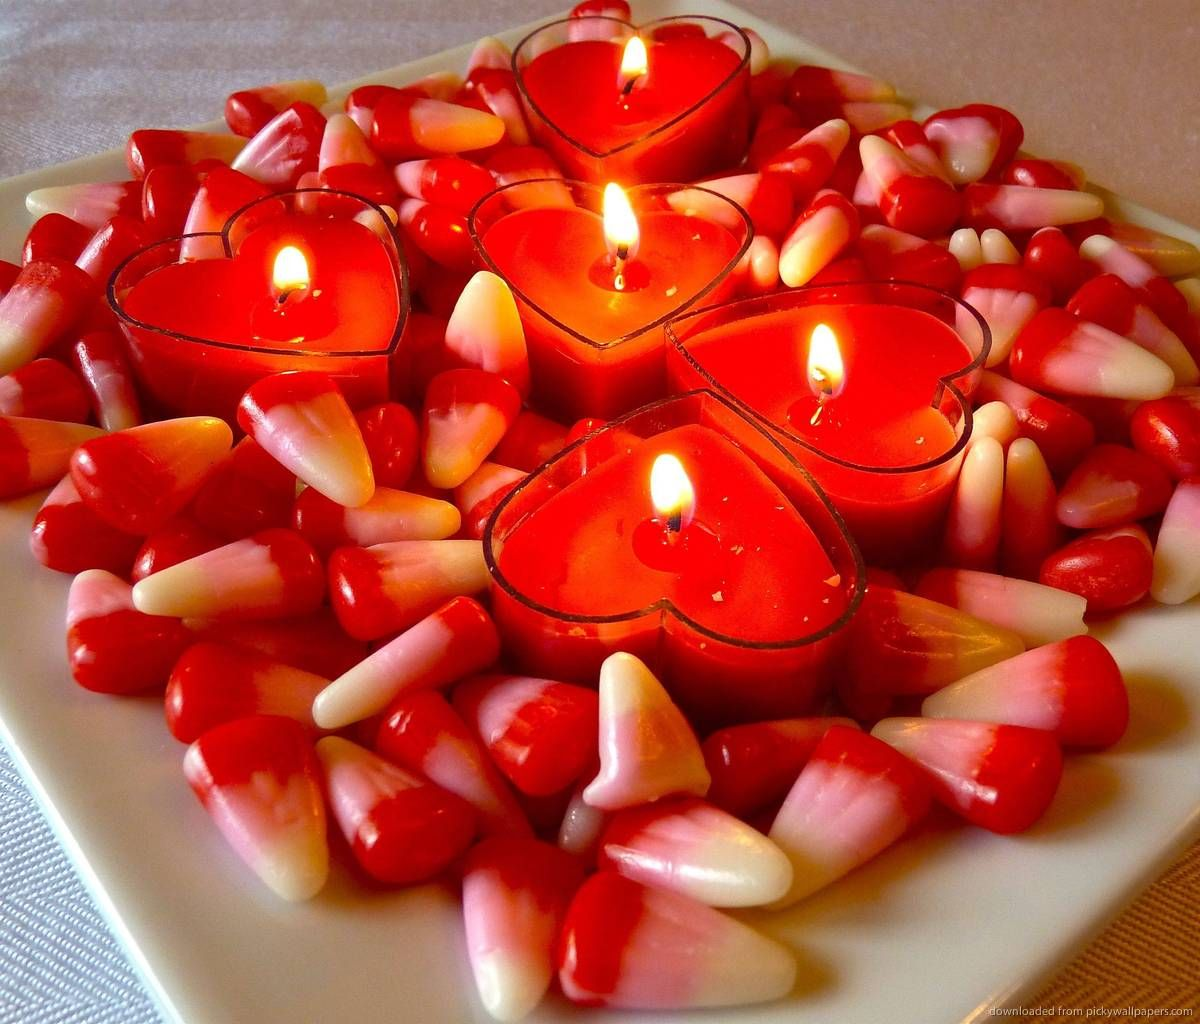 Love heart candle Wallpapers Pictures | Wallpapers 4k | Pinterest ... for Heart Candle Wallpaper  70ref